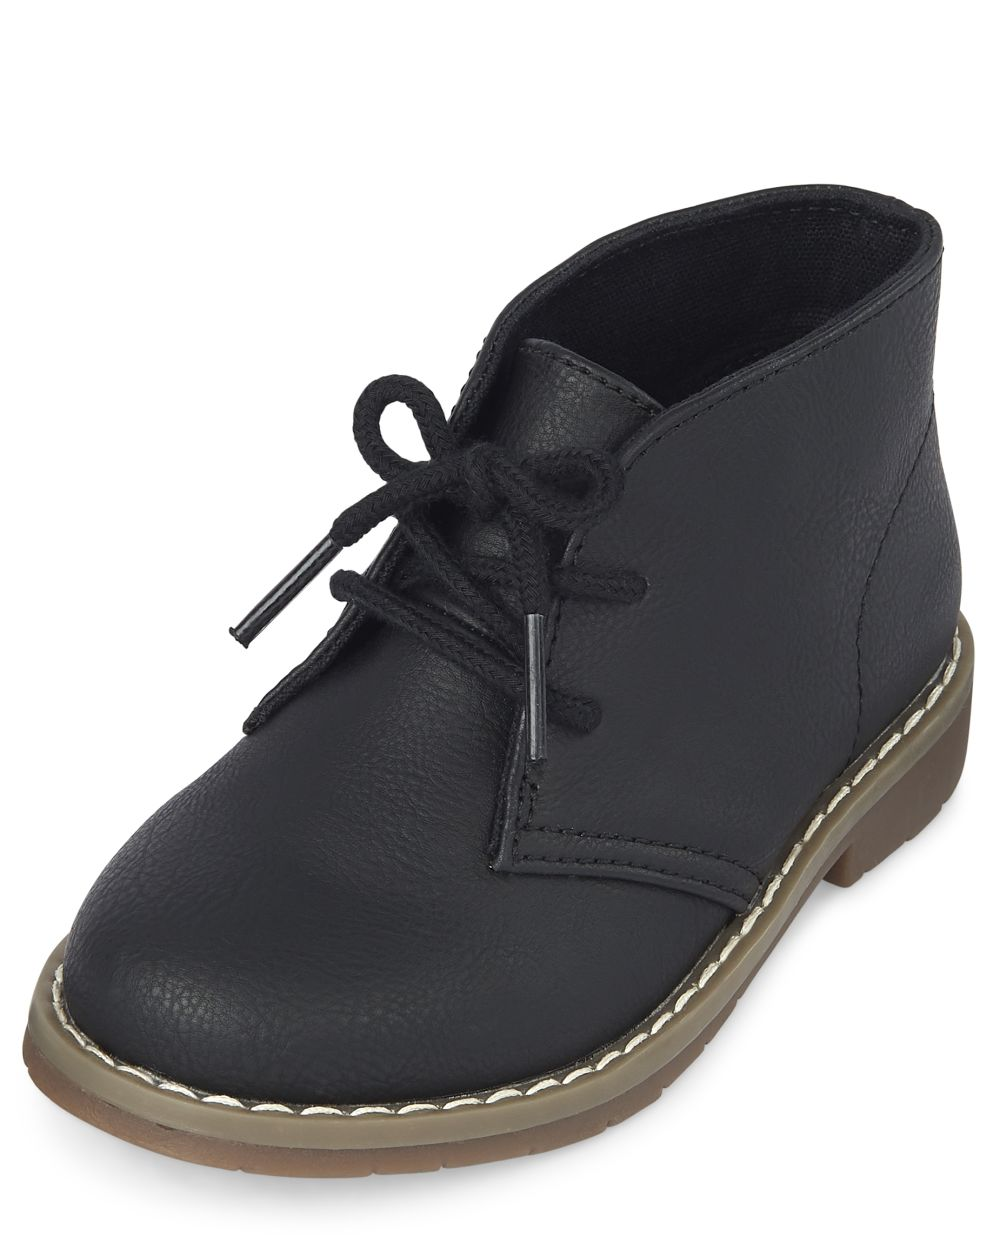 Toddler Boys Uniform Lace Up Boots